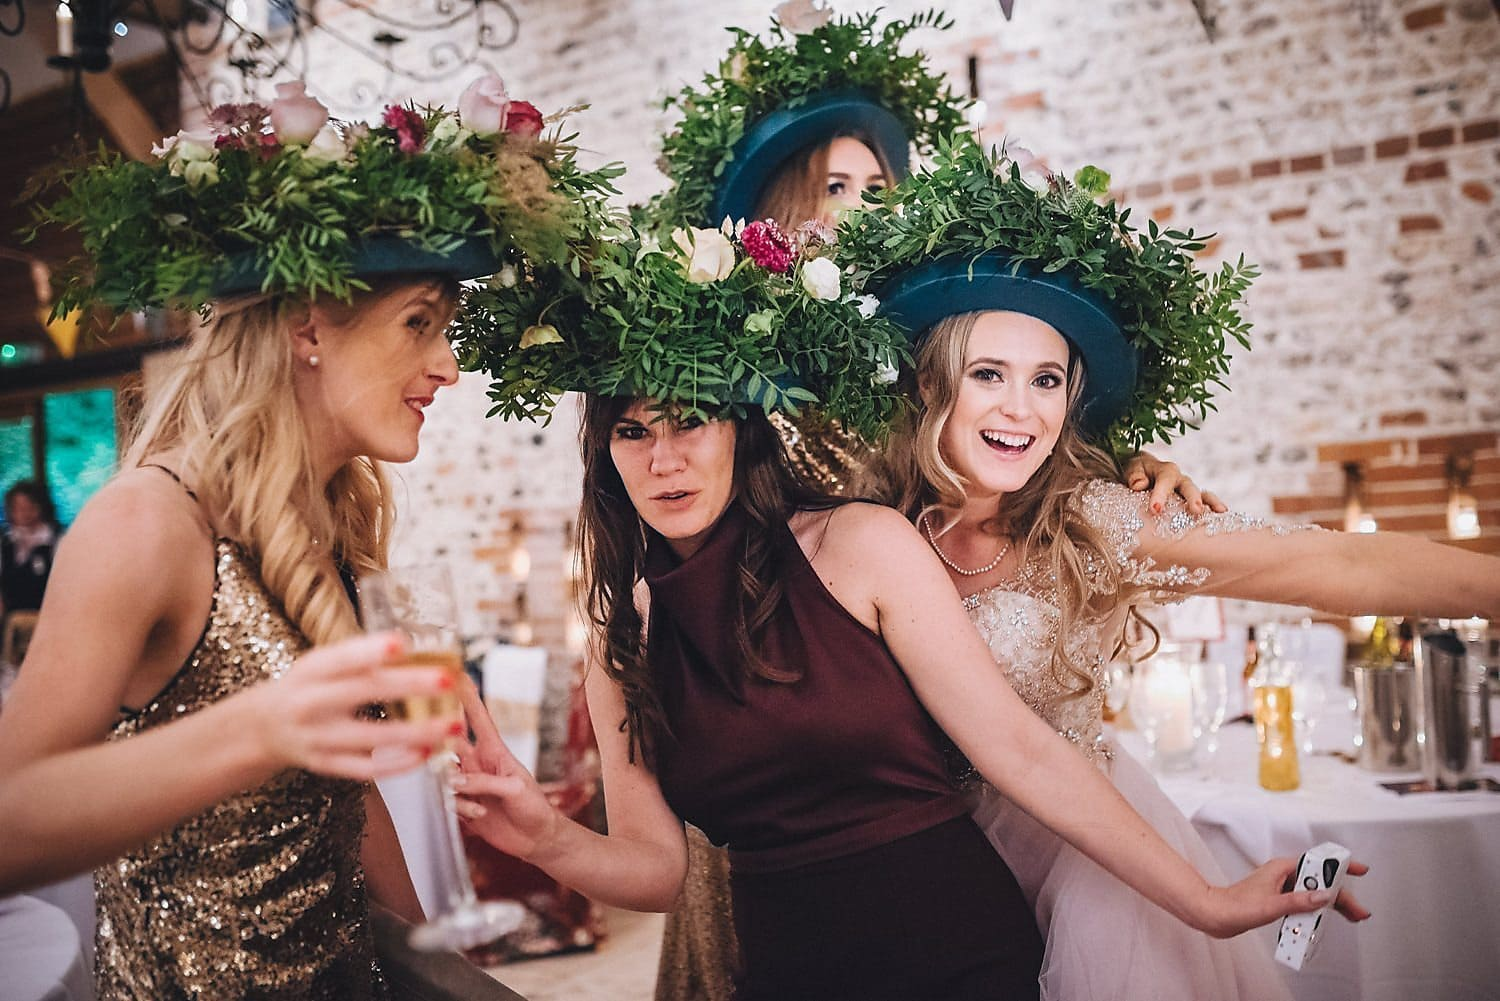 The bride and three female guests pose jokily with bowler hats decorated in loads of flowers